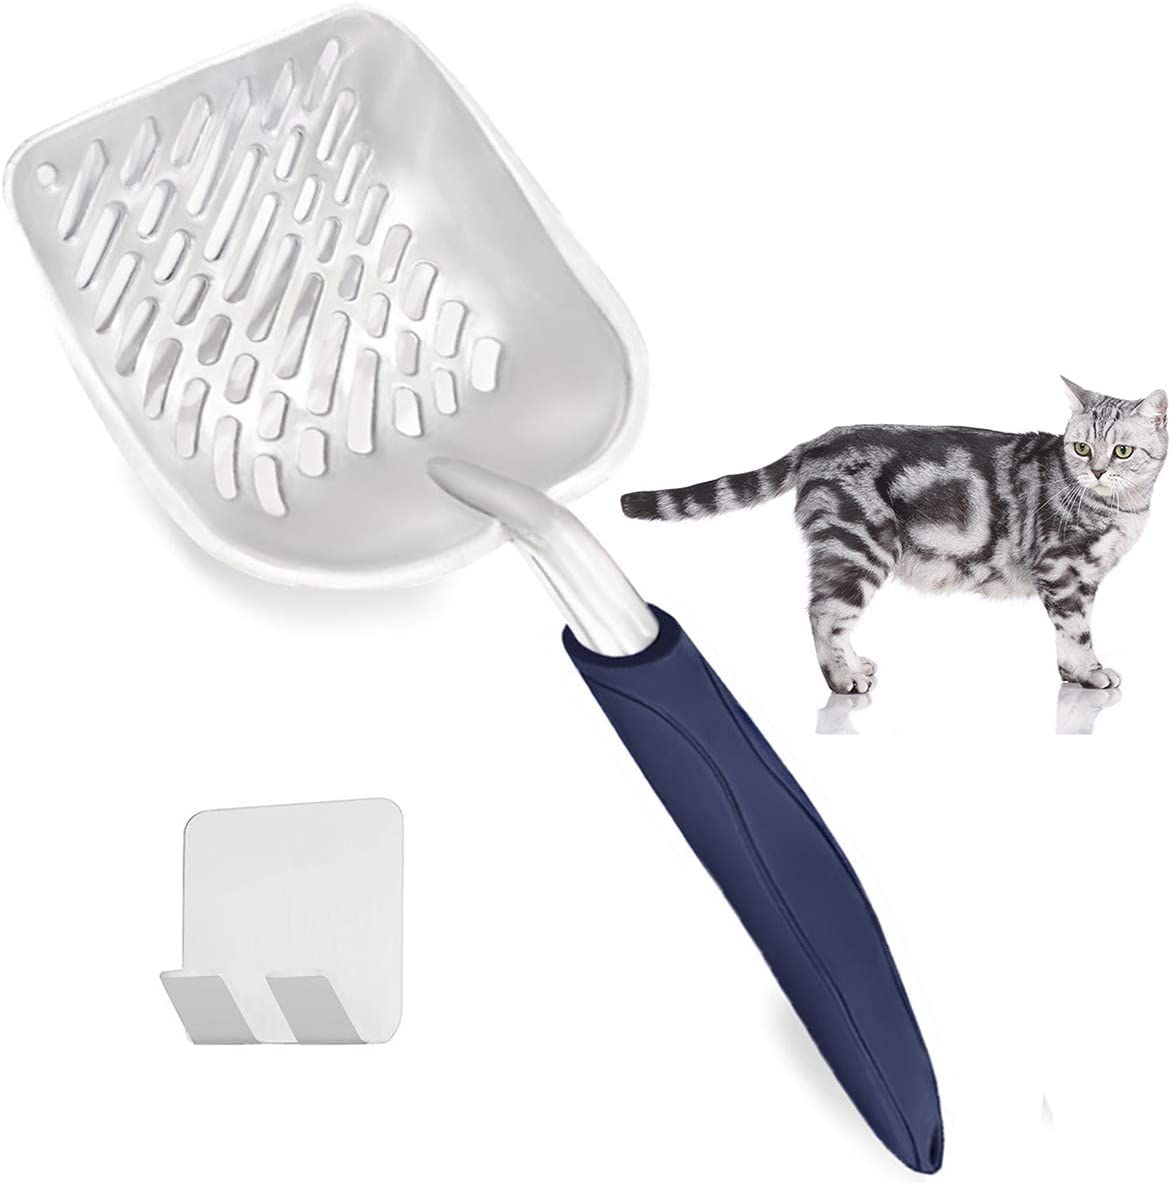 Durable Aluminum Cat Litter Sifter with Deep Shovel Non-Stick Metal Cat Litter Scooper with Solid Holder VehiGO Metal Cat Litter Scoop with Long Handle Kitty Litter Scoop for Sifting Cat Litter